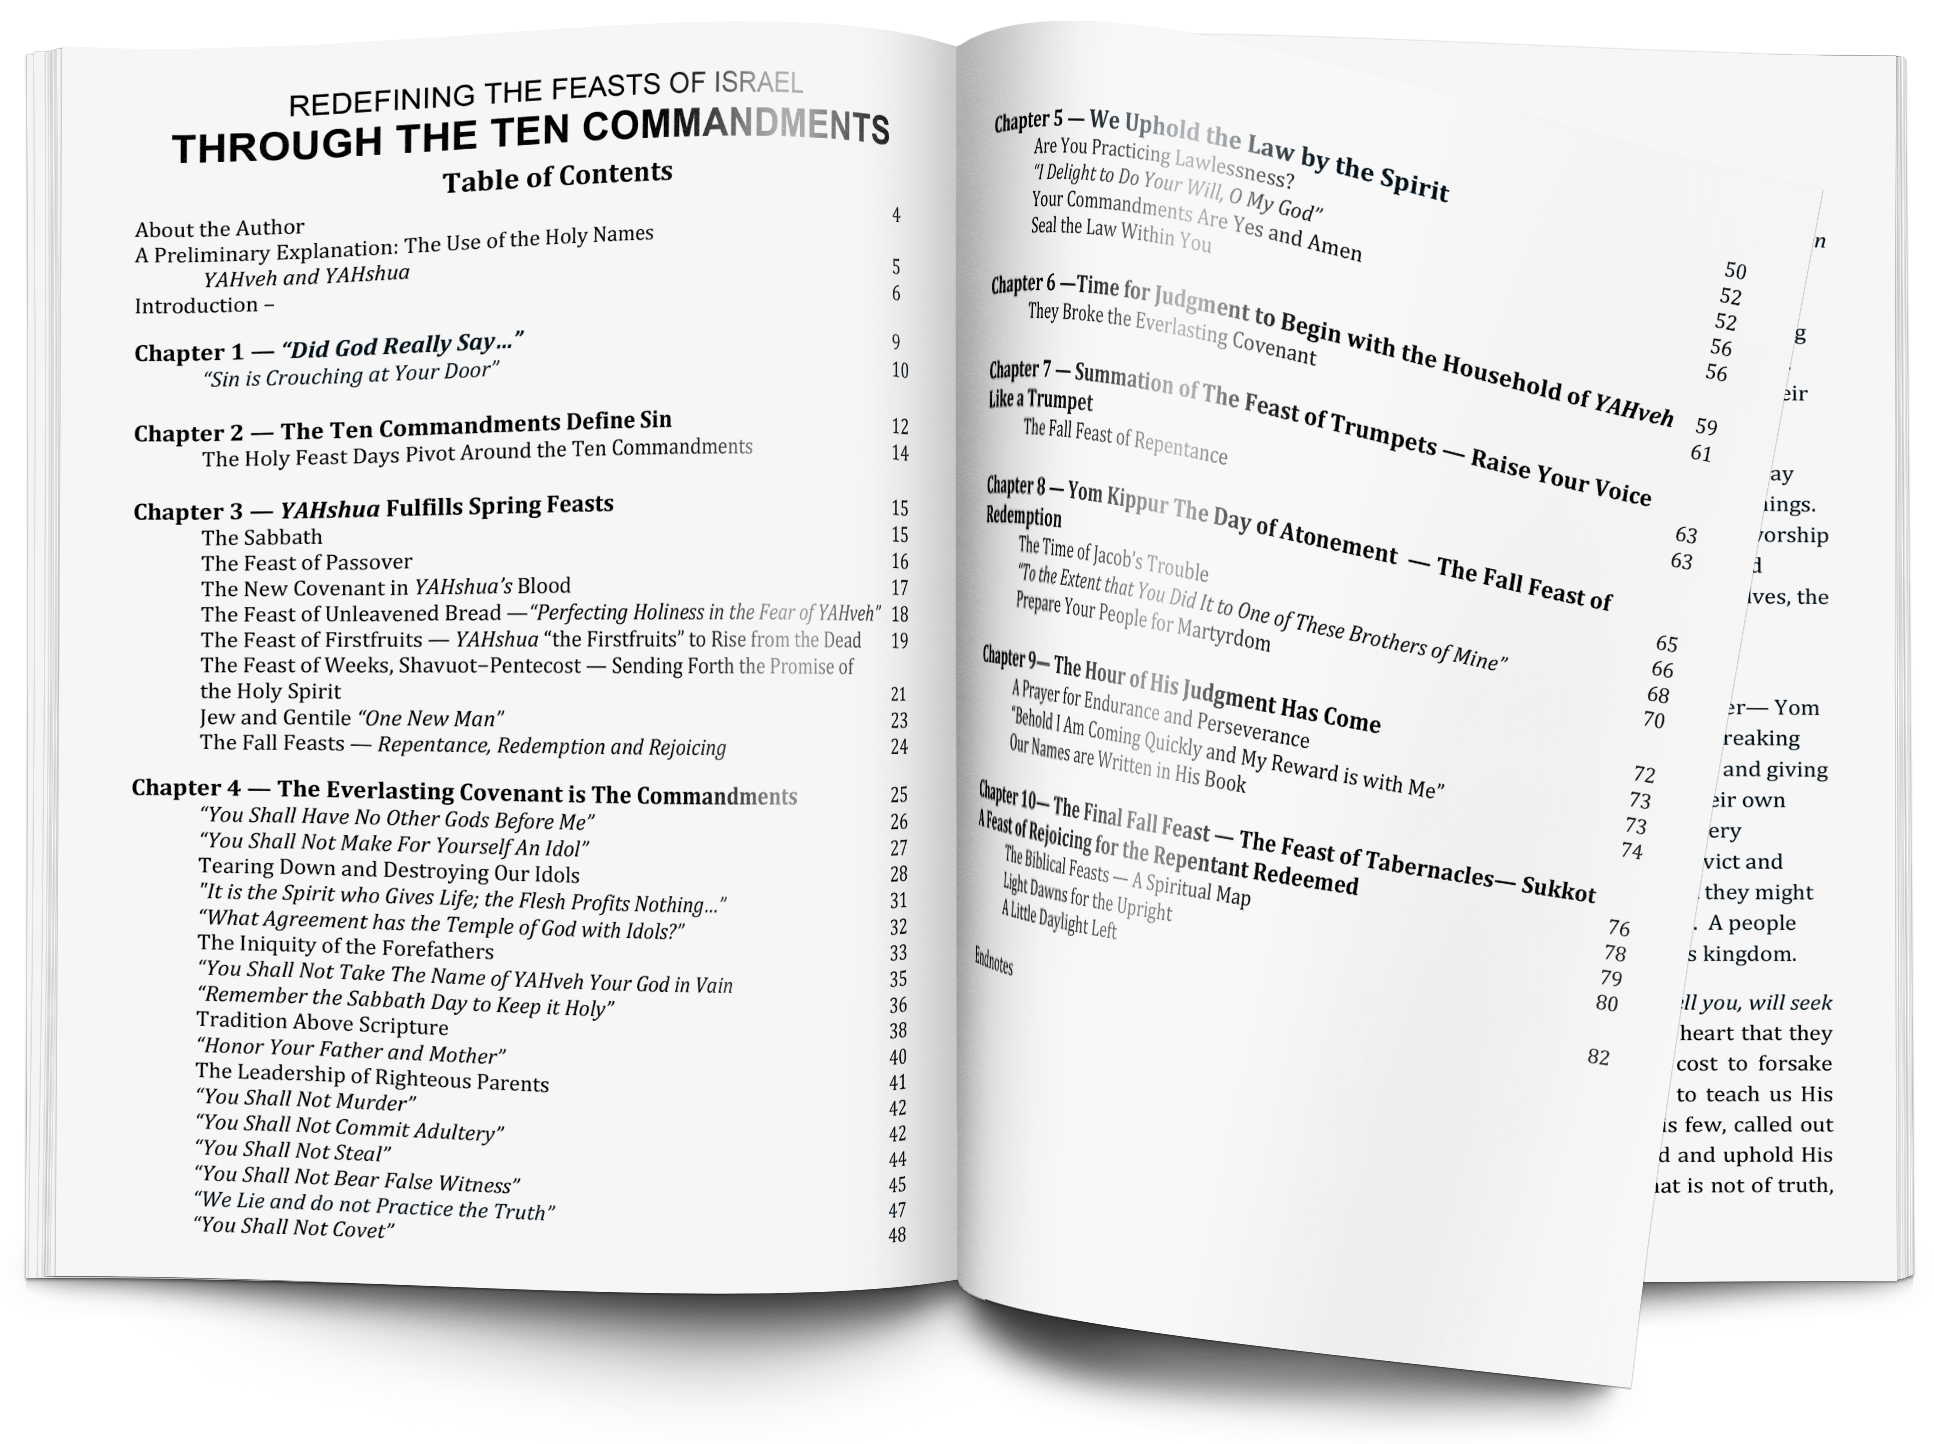 Table of Contents | Click to Enlarge